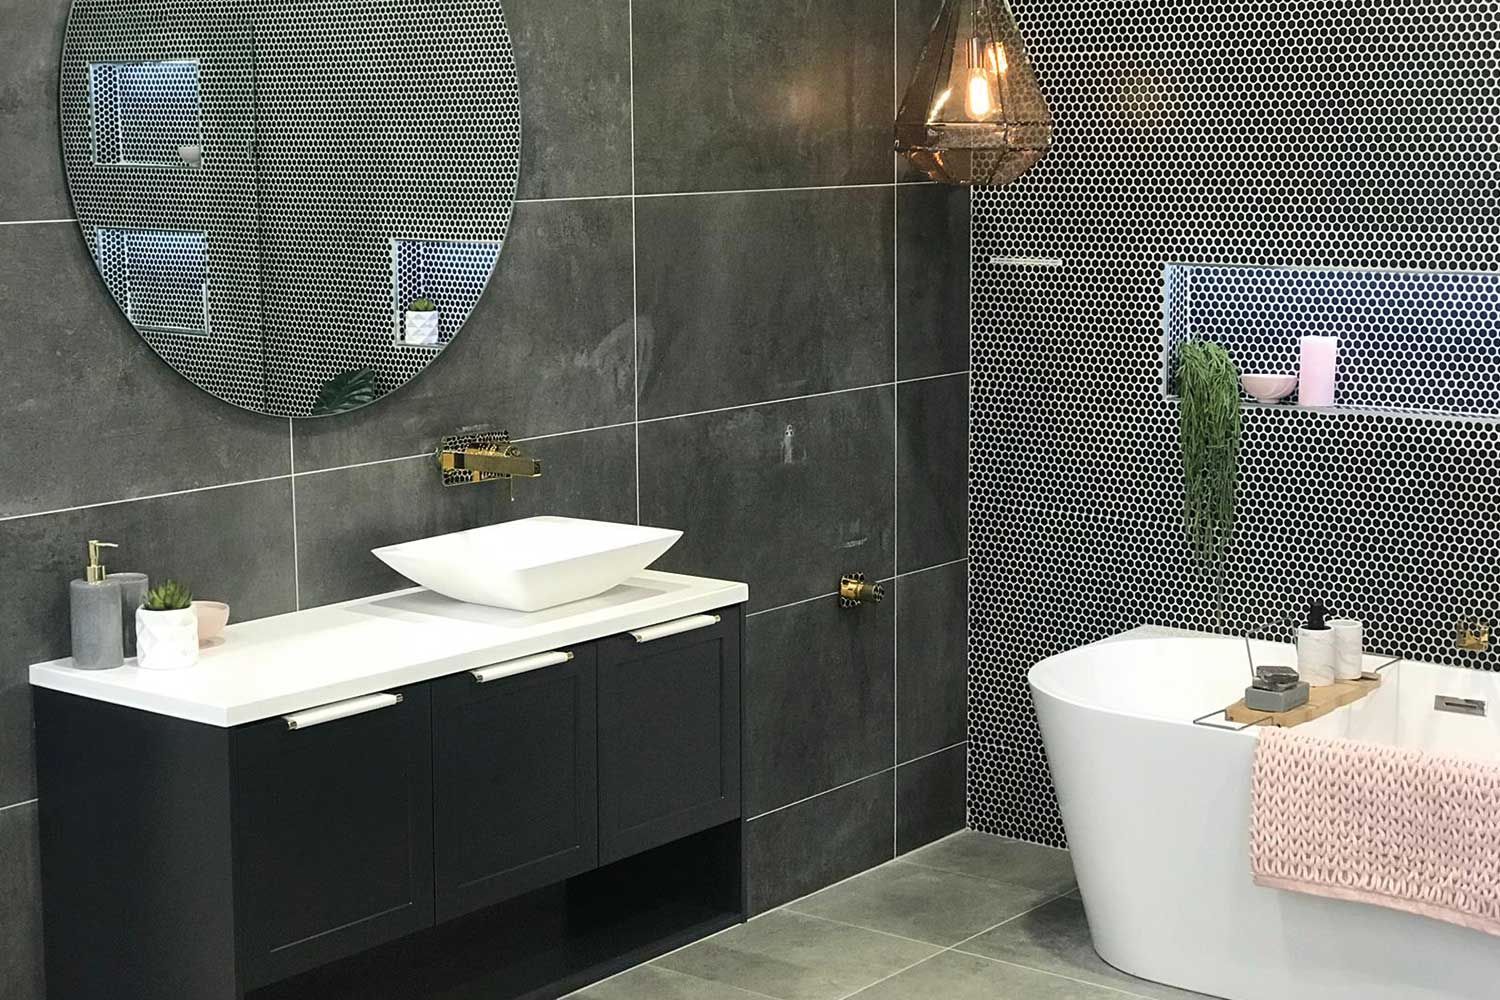 Latest Bathrooms Design The latest in modern bathroom designs to add luxe on a budget